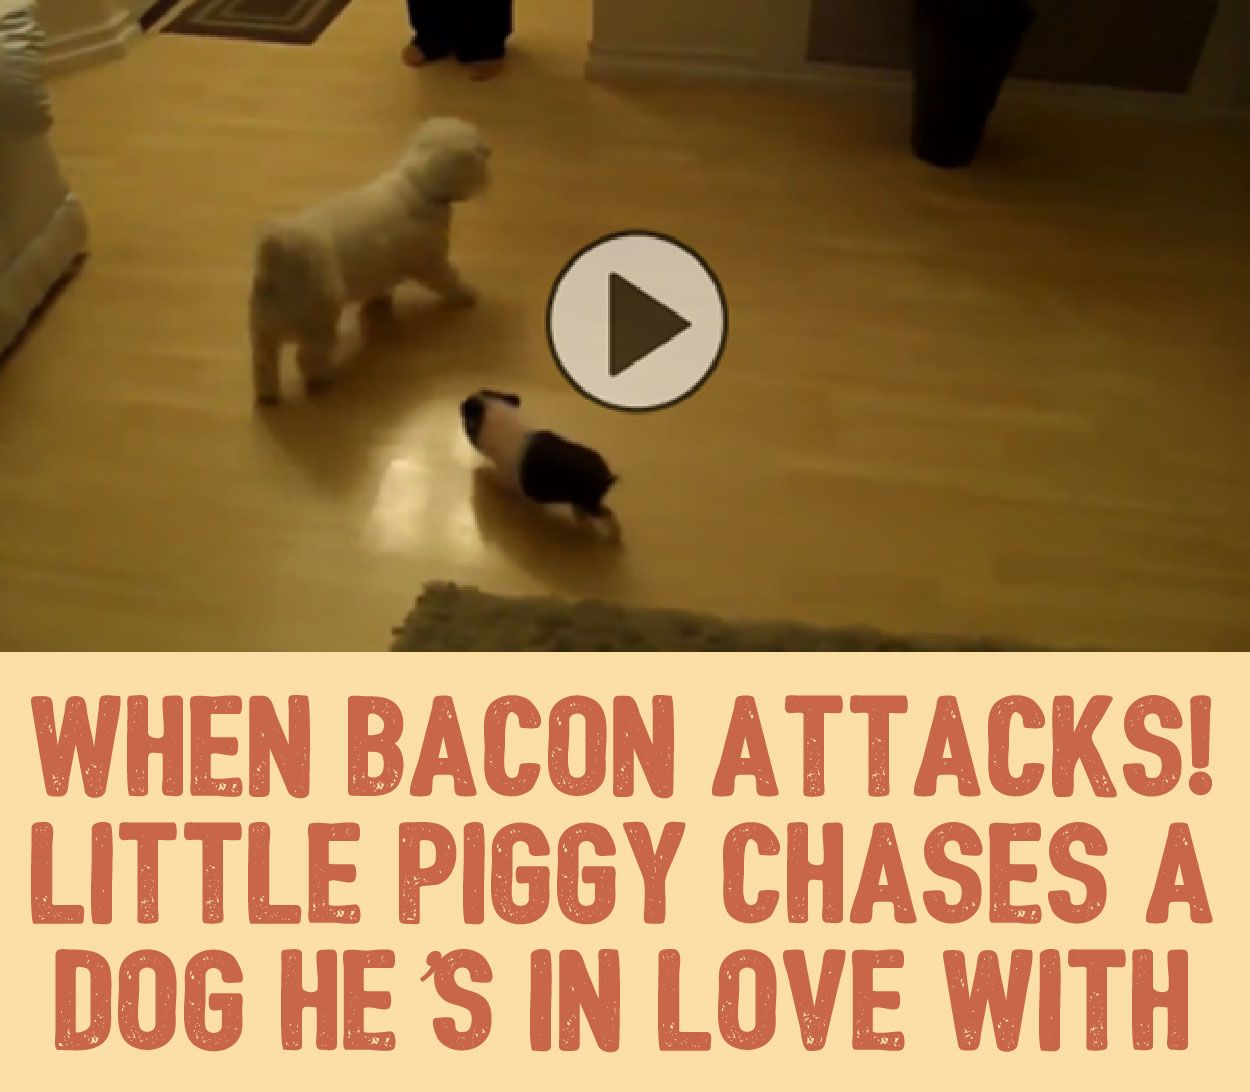 When bacon attacks little piggy chases a dog heus in love with